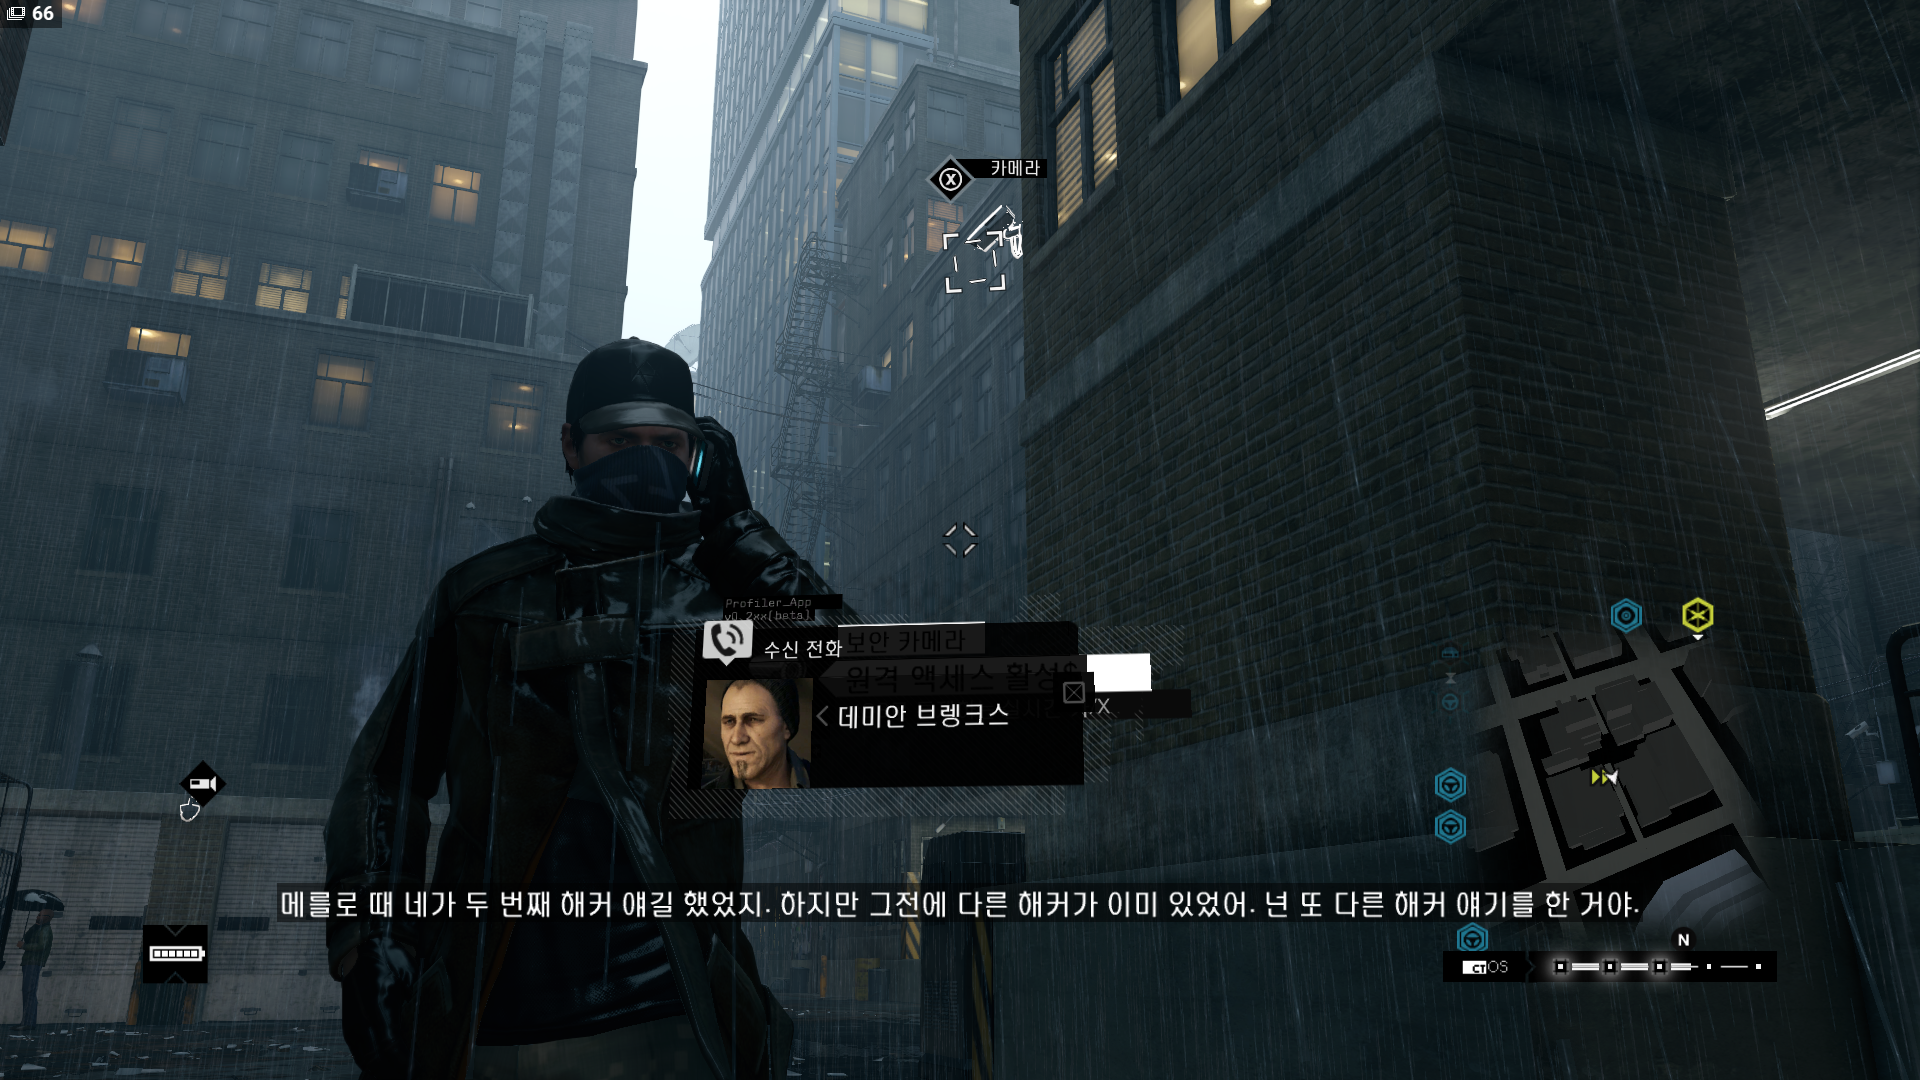 Watch_Dogs2016-11-26-15-14-2.png